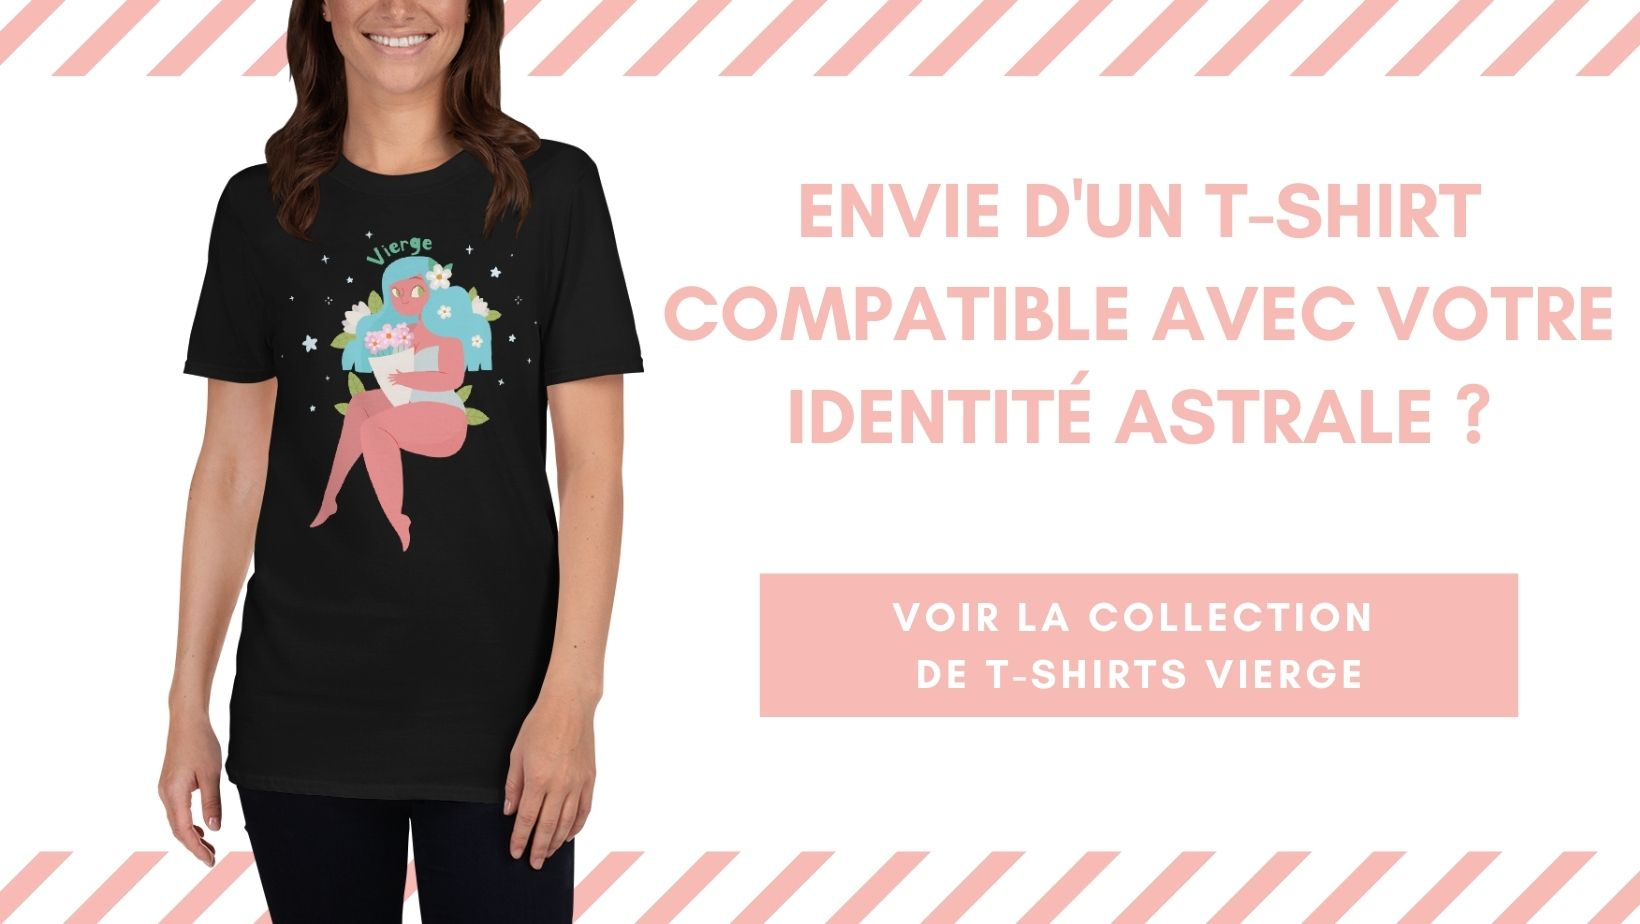 Collection Teeshirts Signe astrologique Vierge Horo-Astro